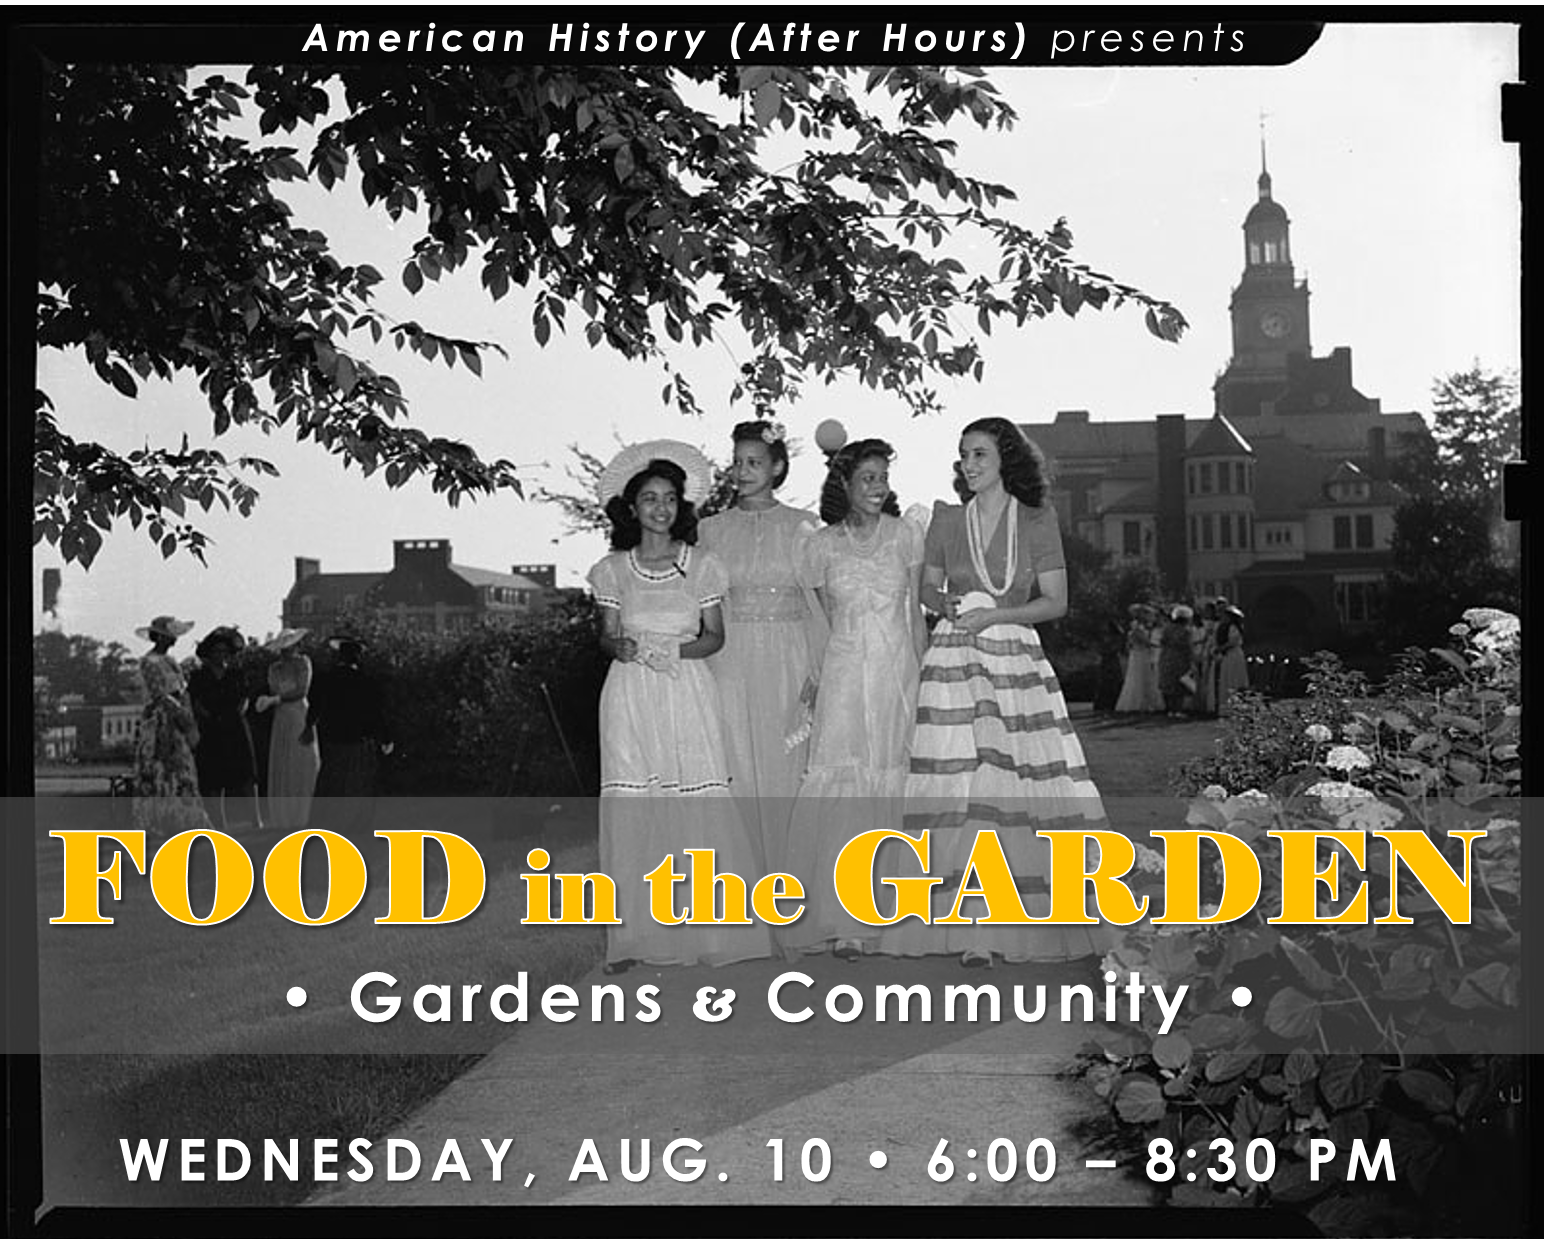 Food in the Garden with title text and date overlayed on image